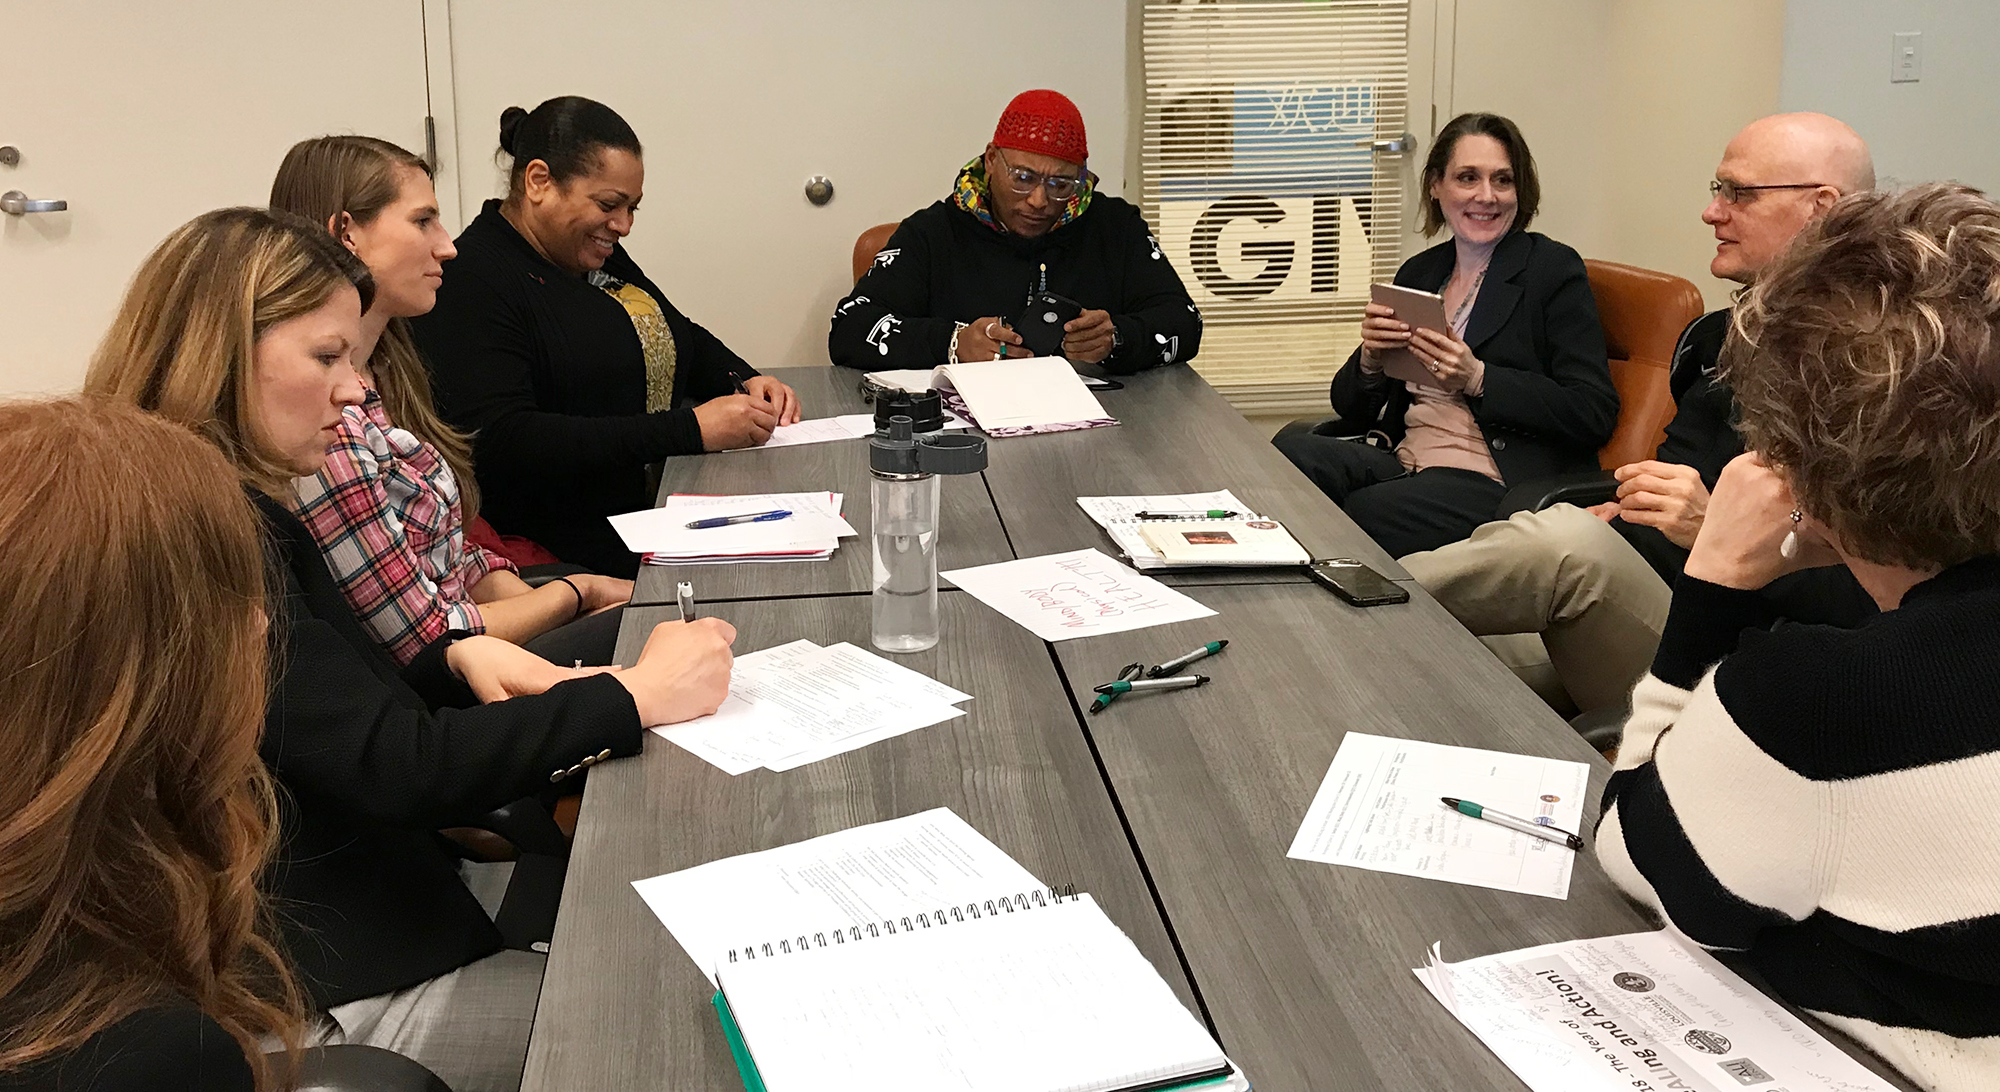 Mind/Body Workgroup during planning meeting at the Muhammad Ali Center.